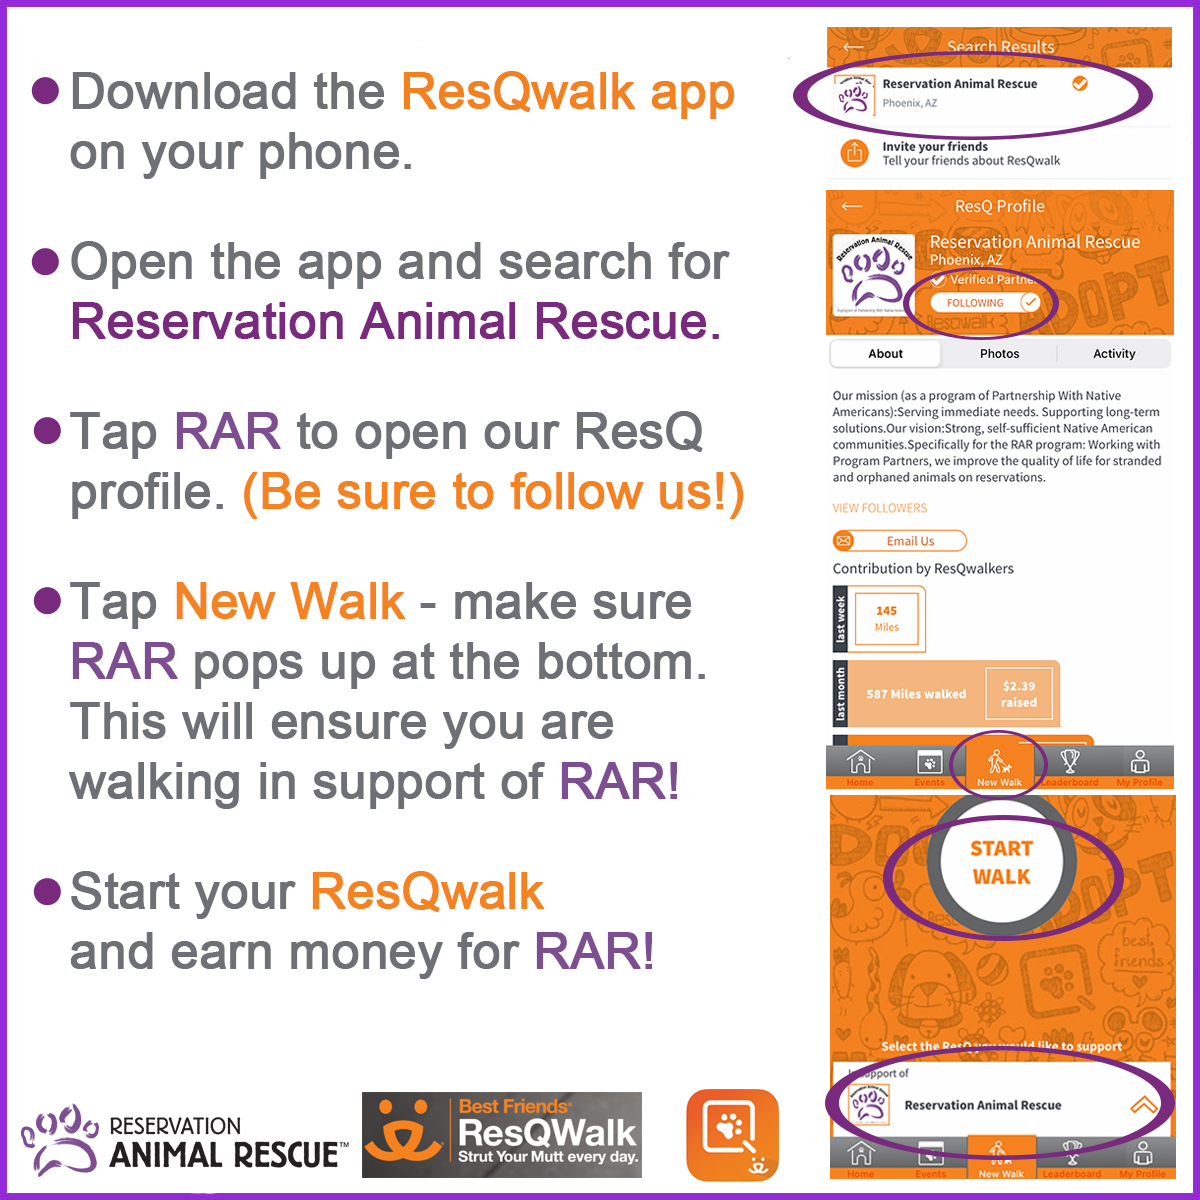 How-to instructions for the ResQwalk app